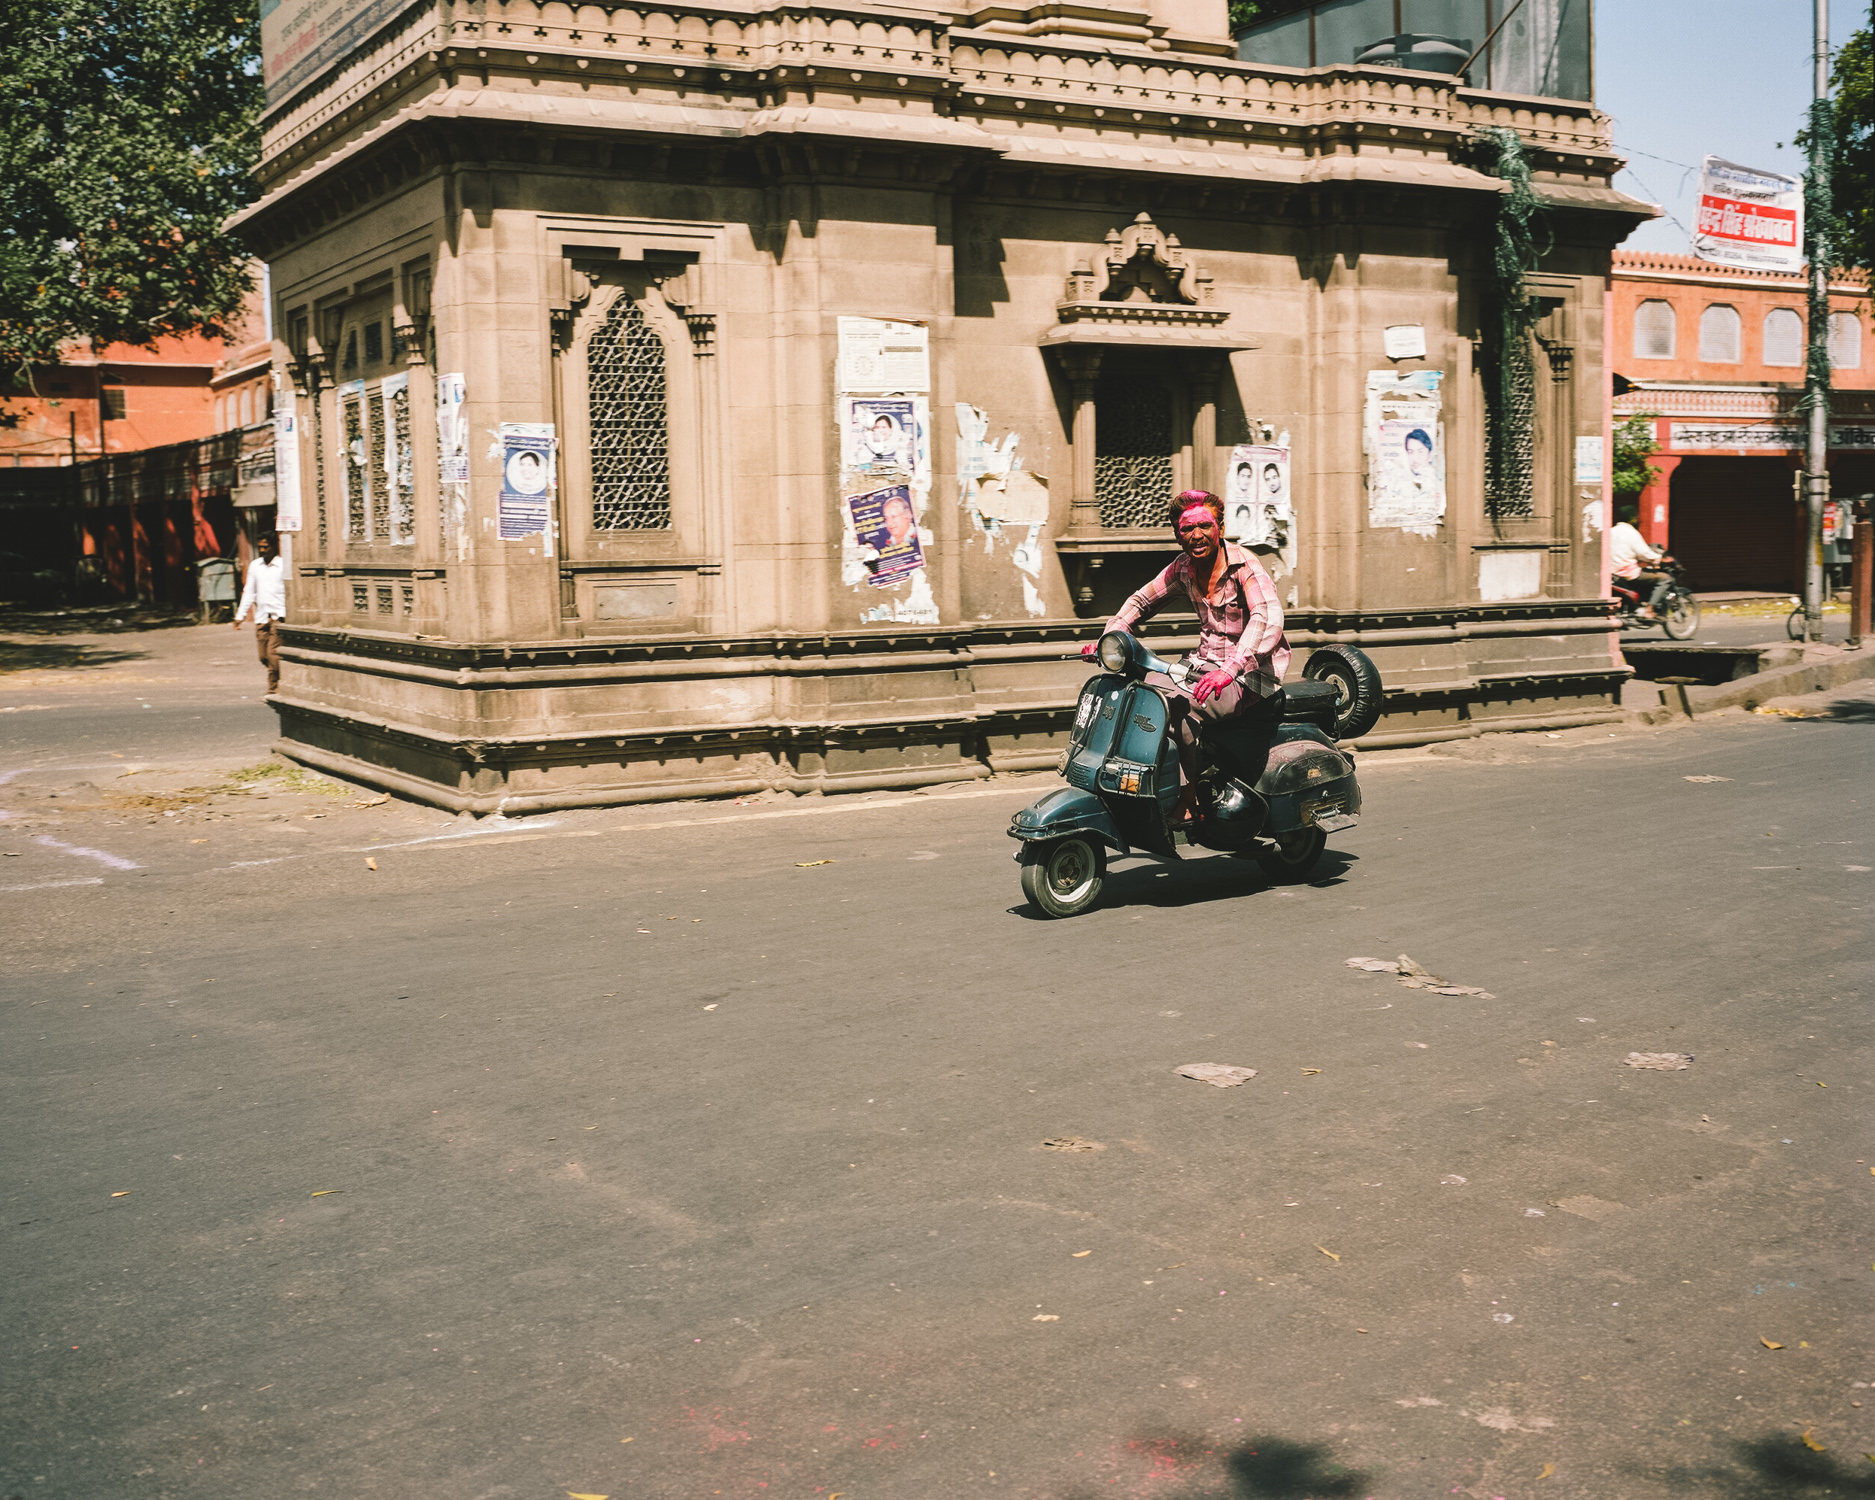 india_travel_photography-1.jpg